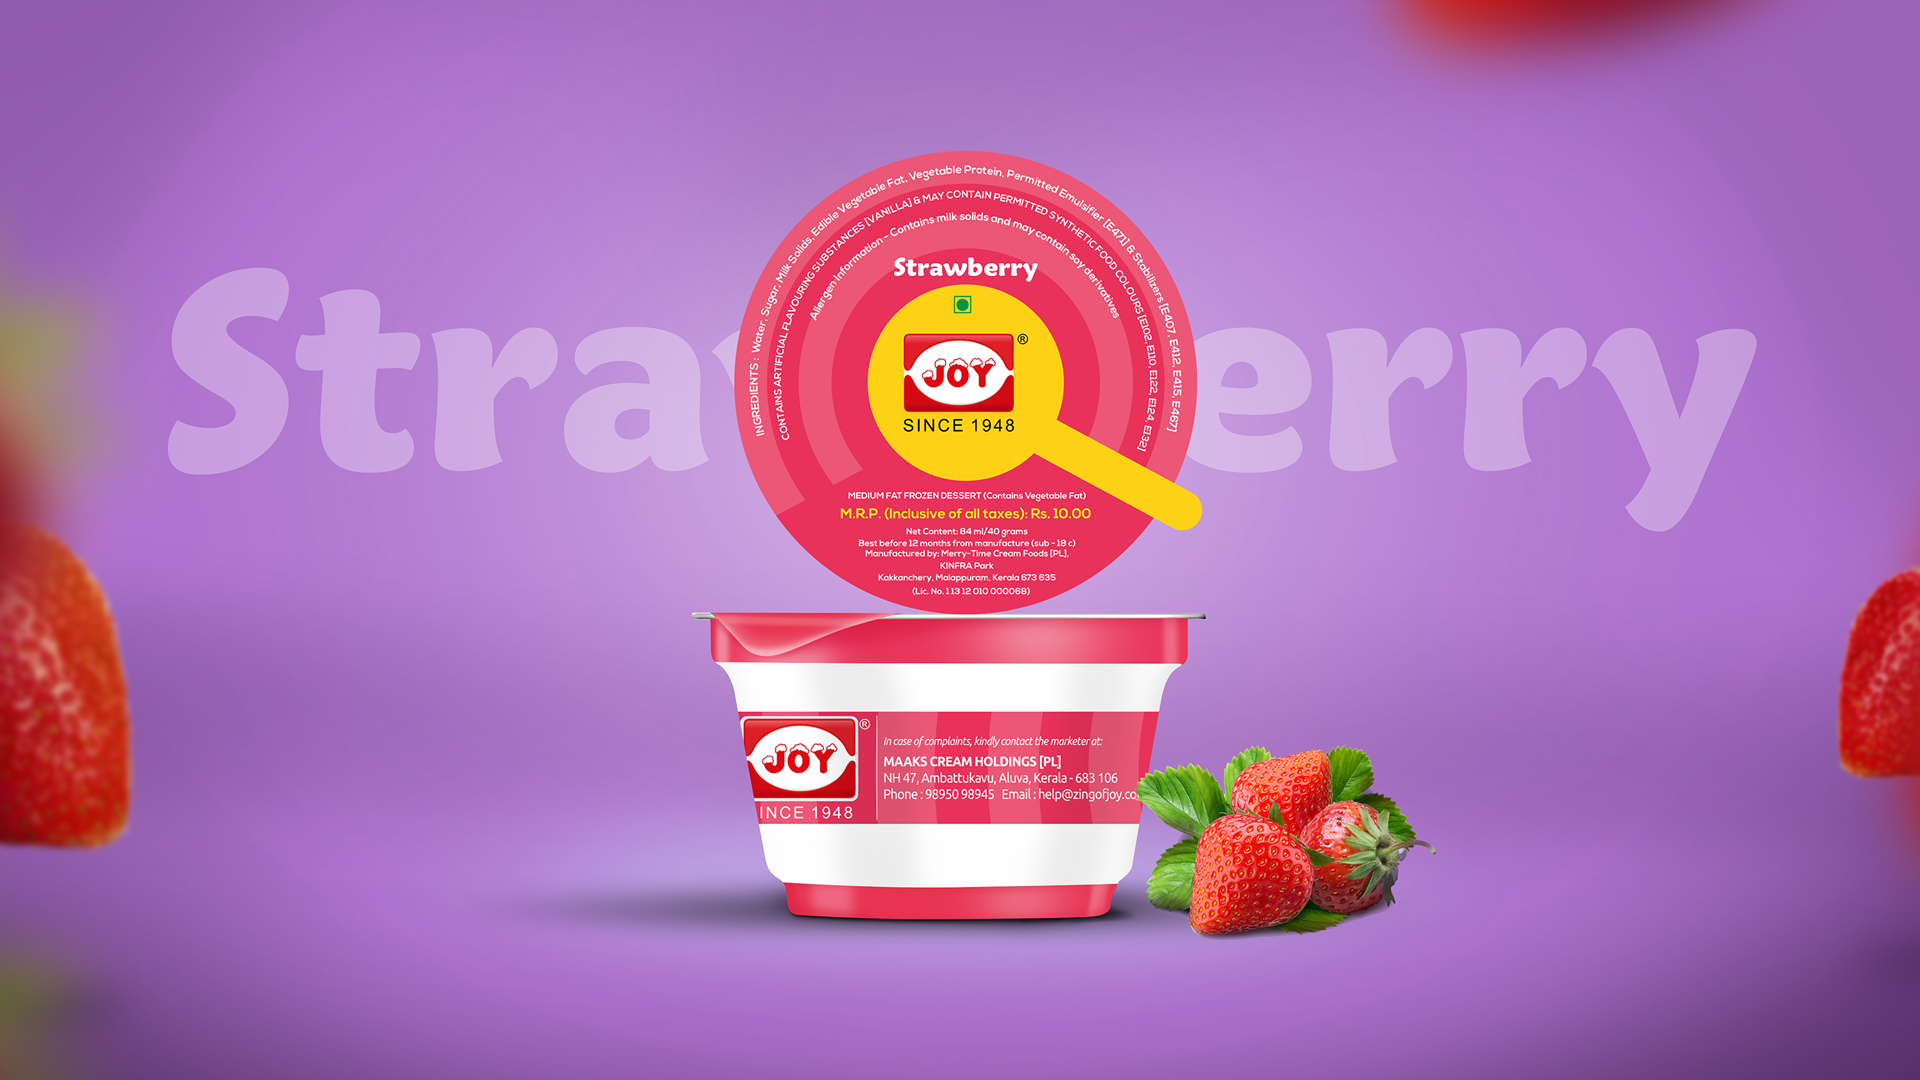 Joy Ice Cream Strawberry Cup Package Design